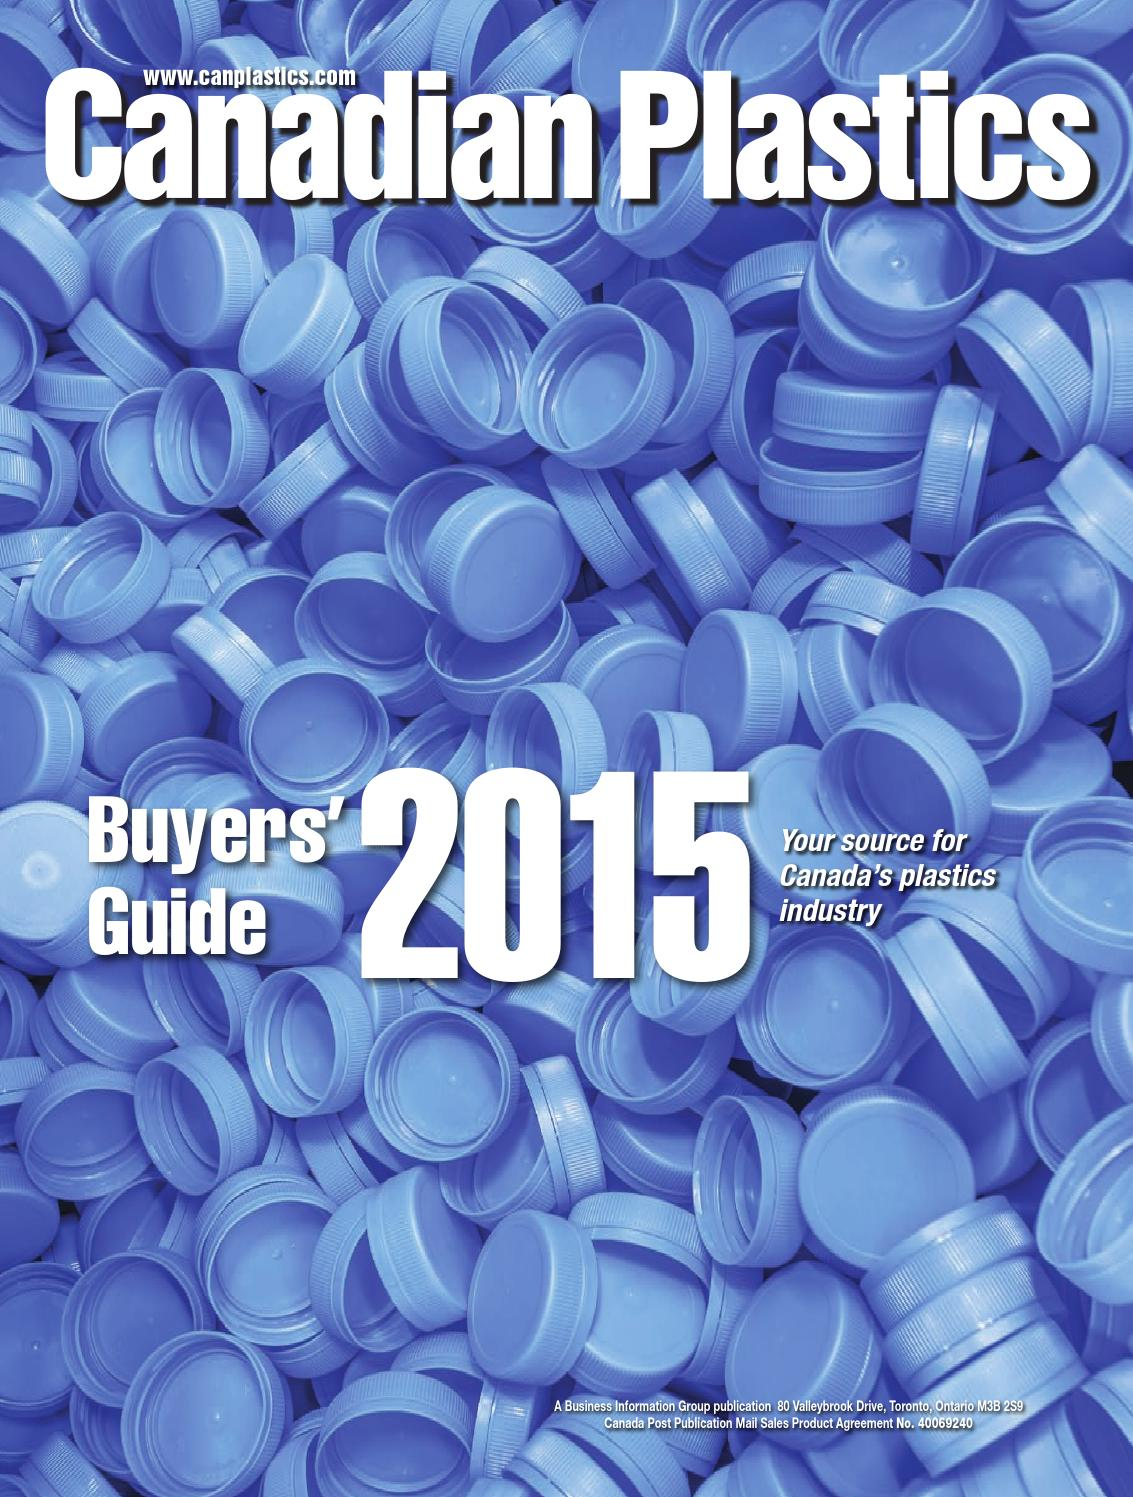 Color Emajl Kaminofen Kolding Canadian Plastics Buyers Guide 2015 By Annex Business Media Issuu